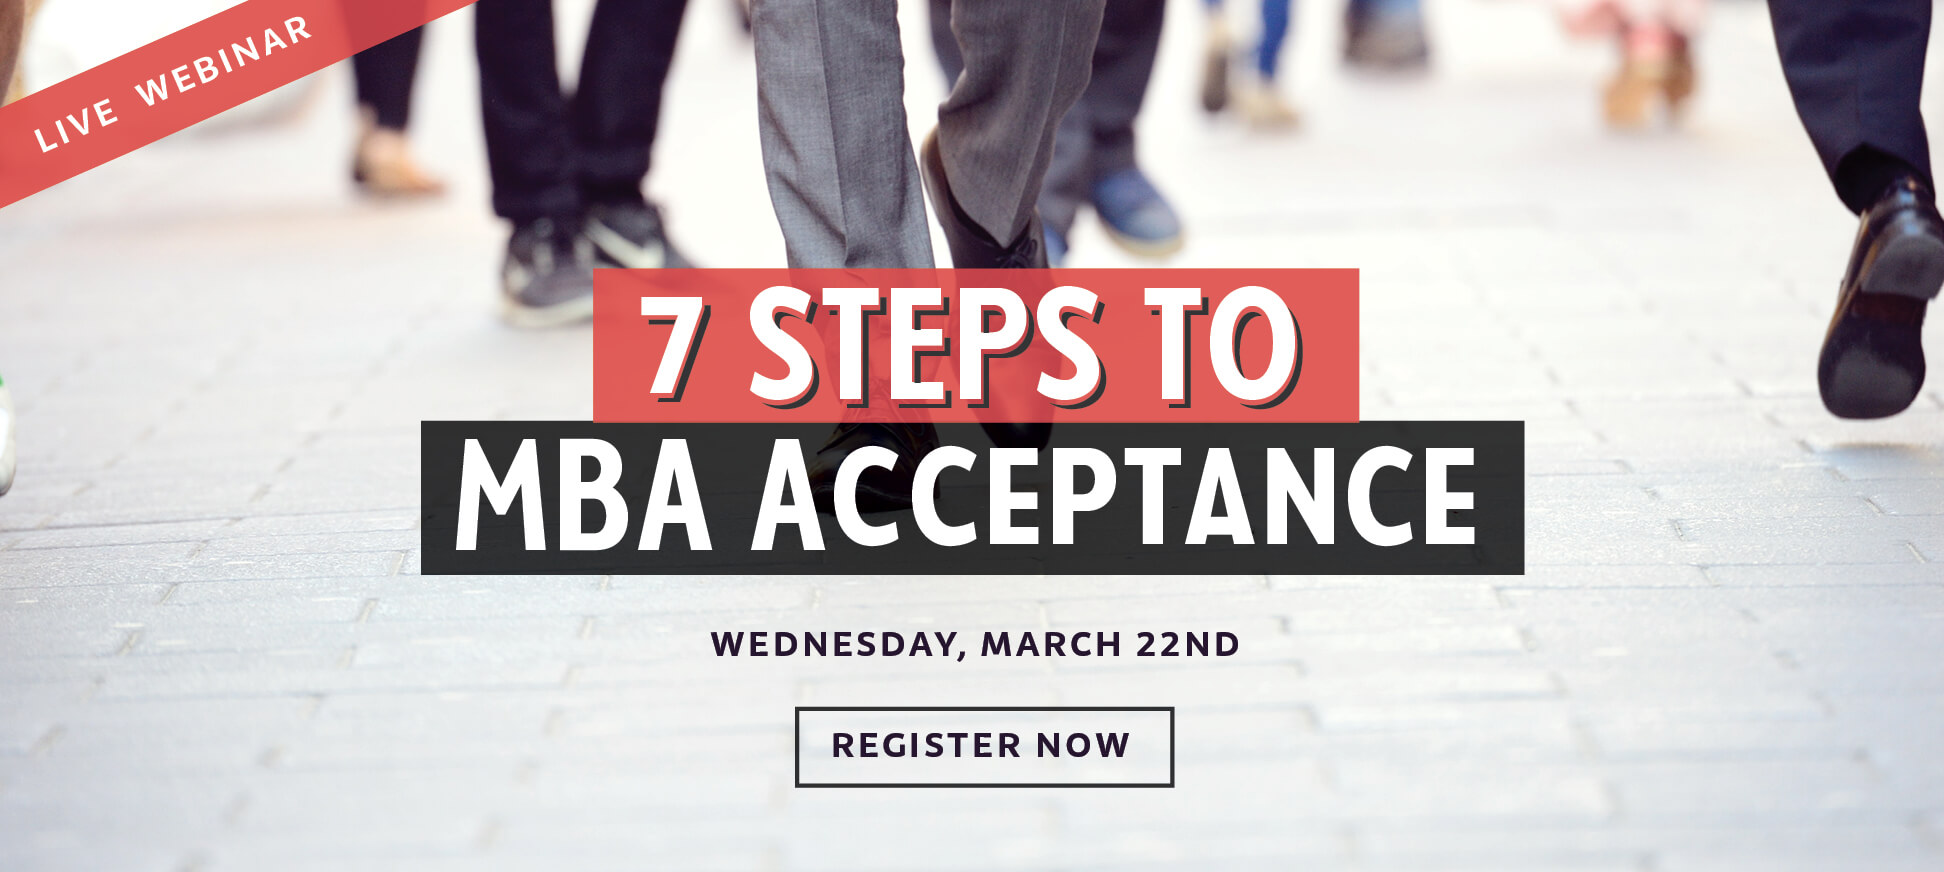 7 Steps to MBA Acceptance: Register for the webinar!